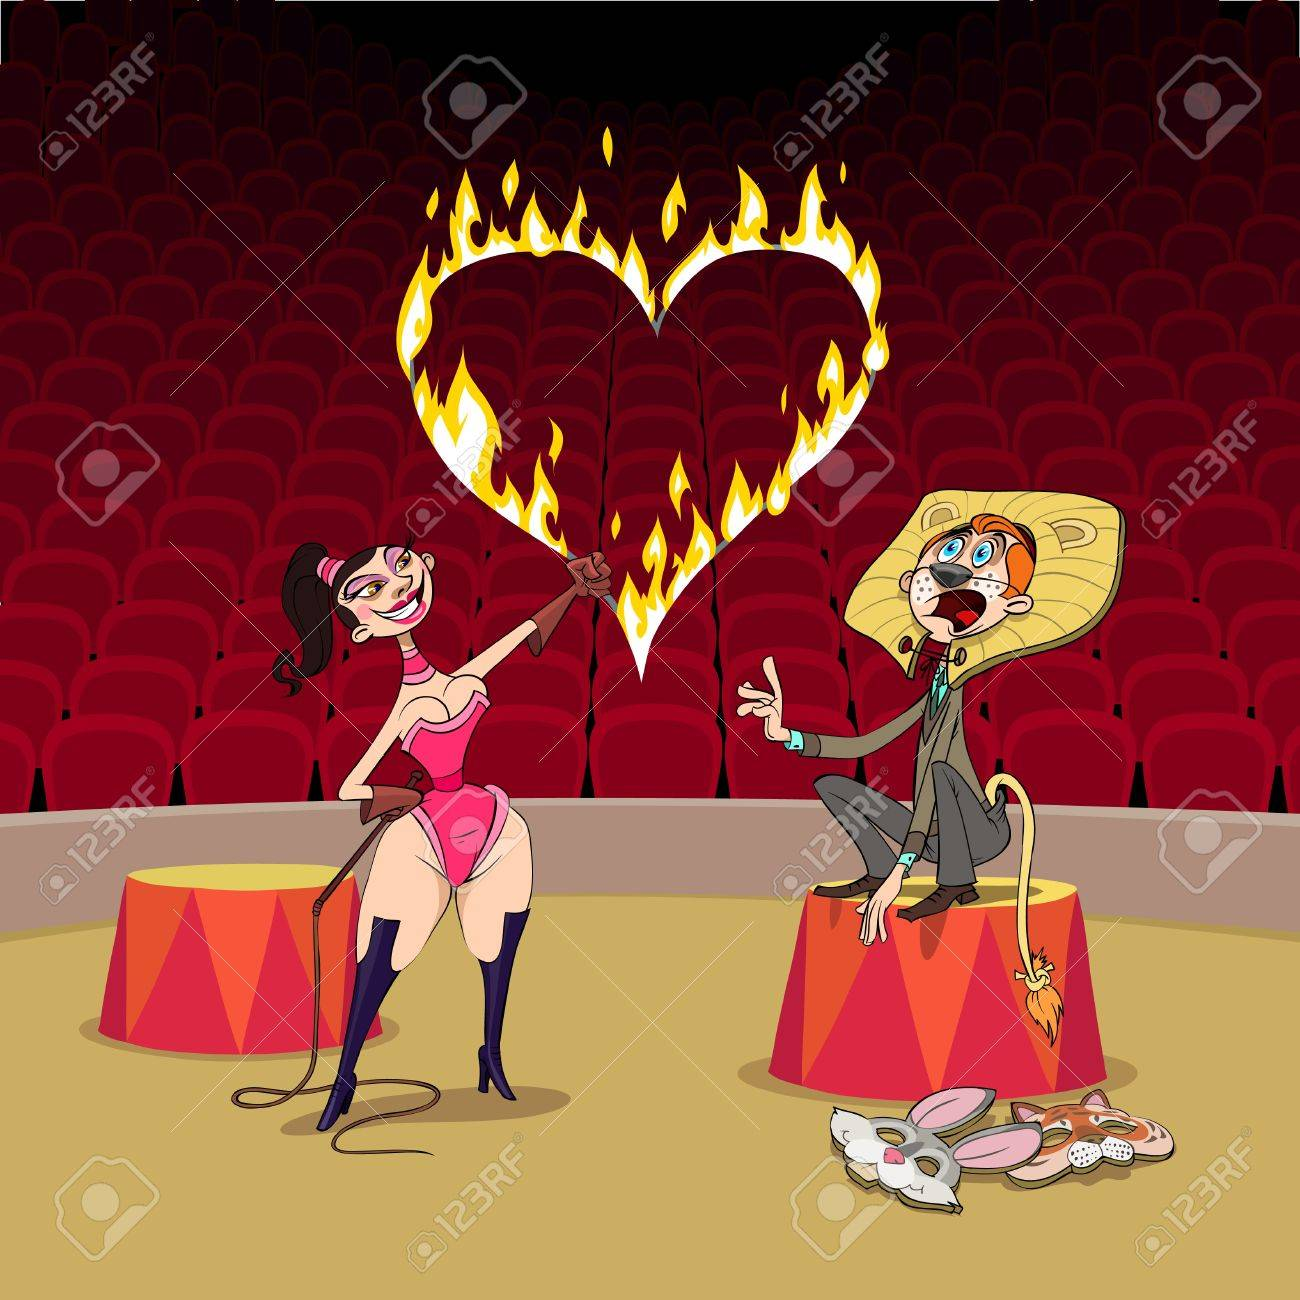 At Valentine's Day circus girl plays a predator training with her boyfriend. Stock Vector - 8668371